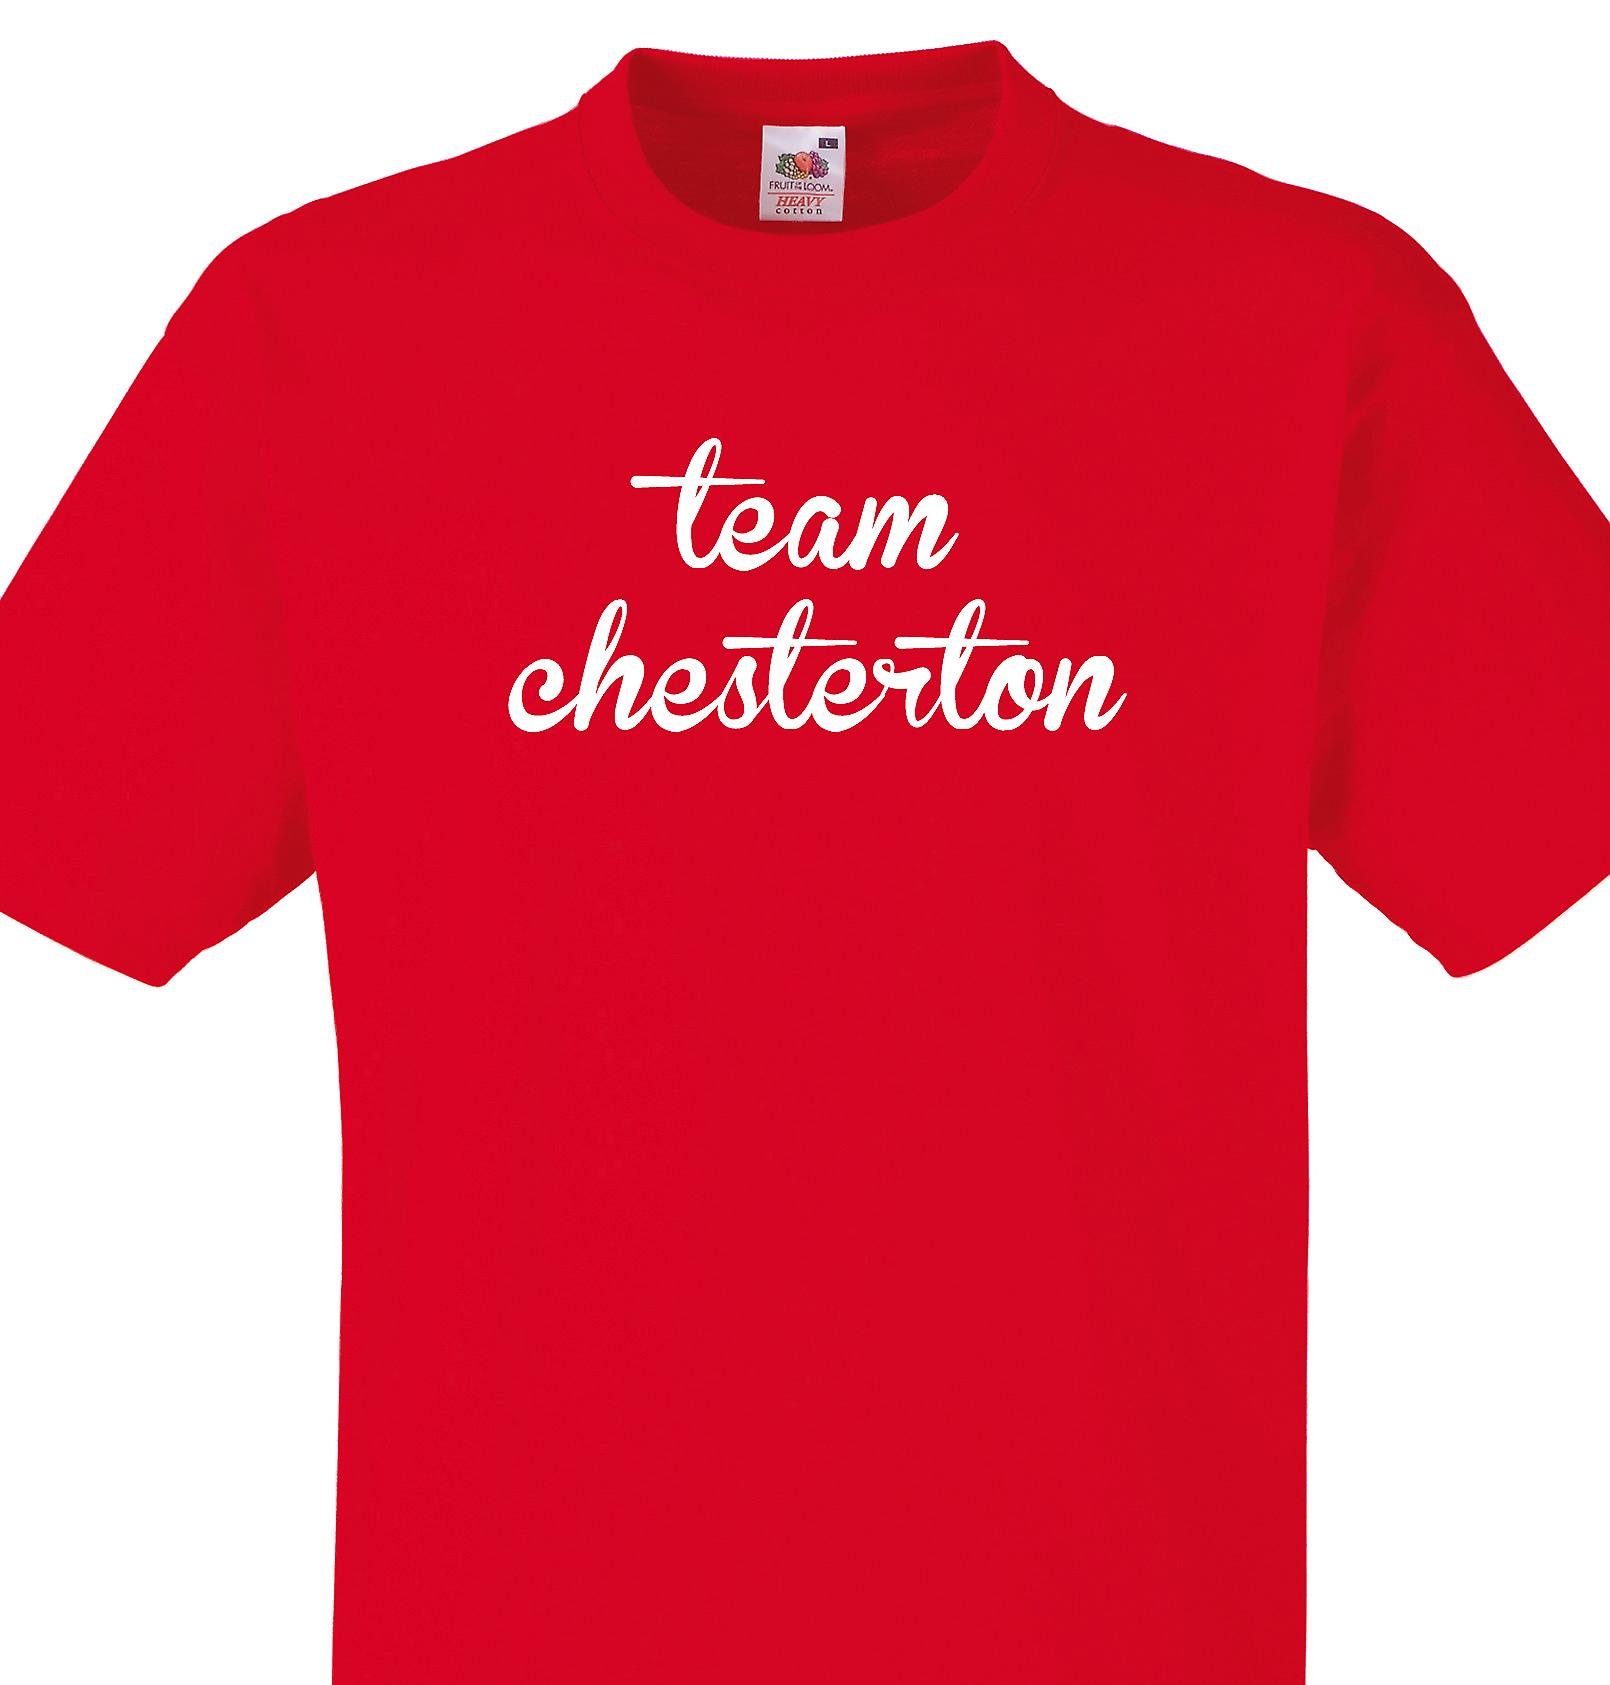 Team-Chesterton Rot-T-shirt